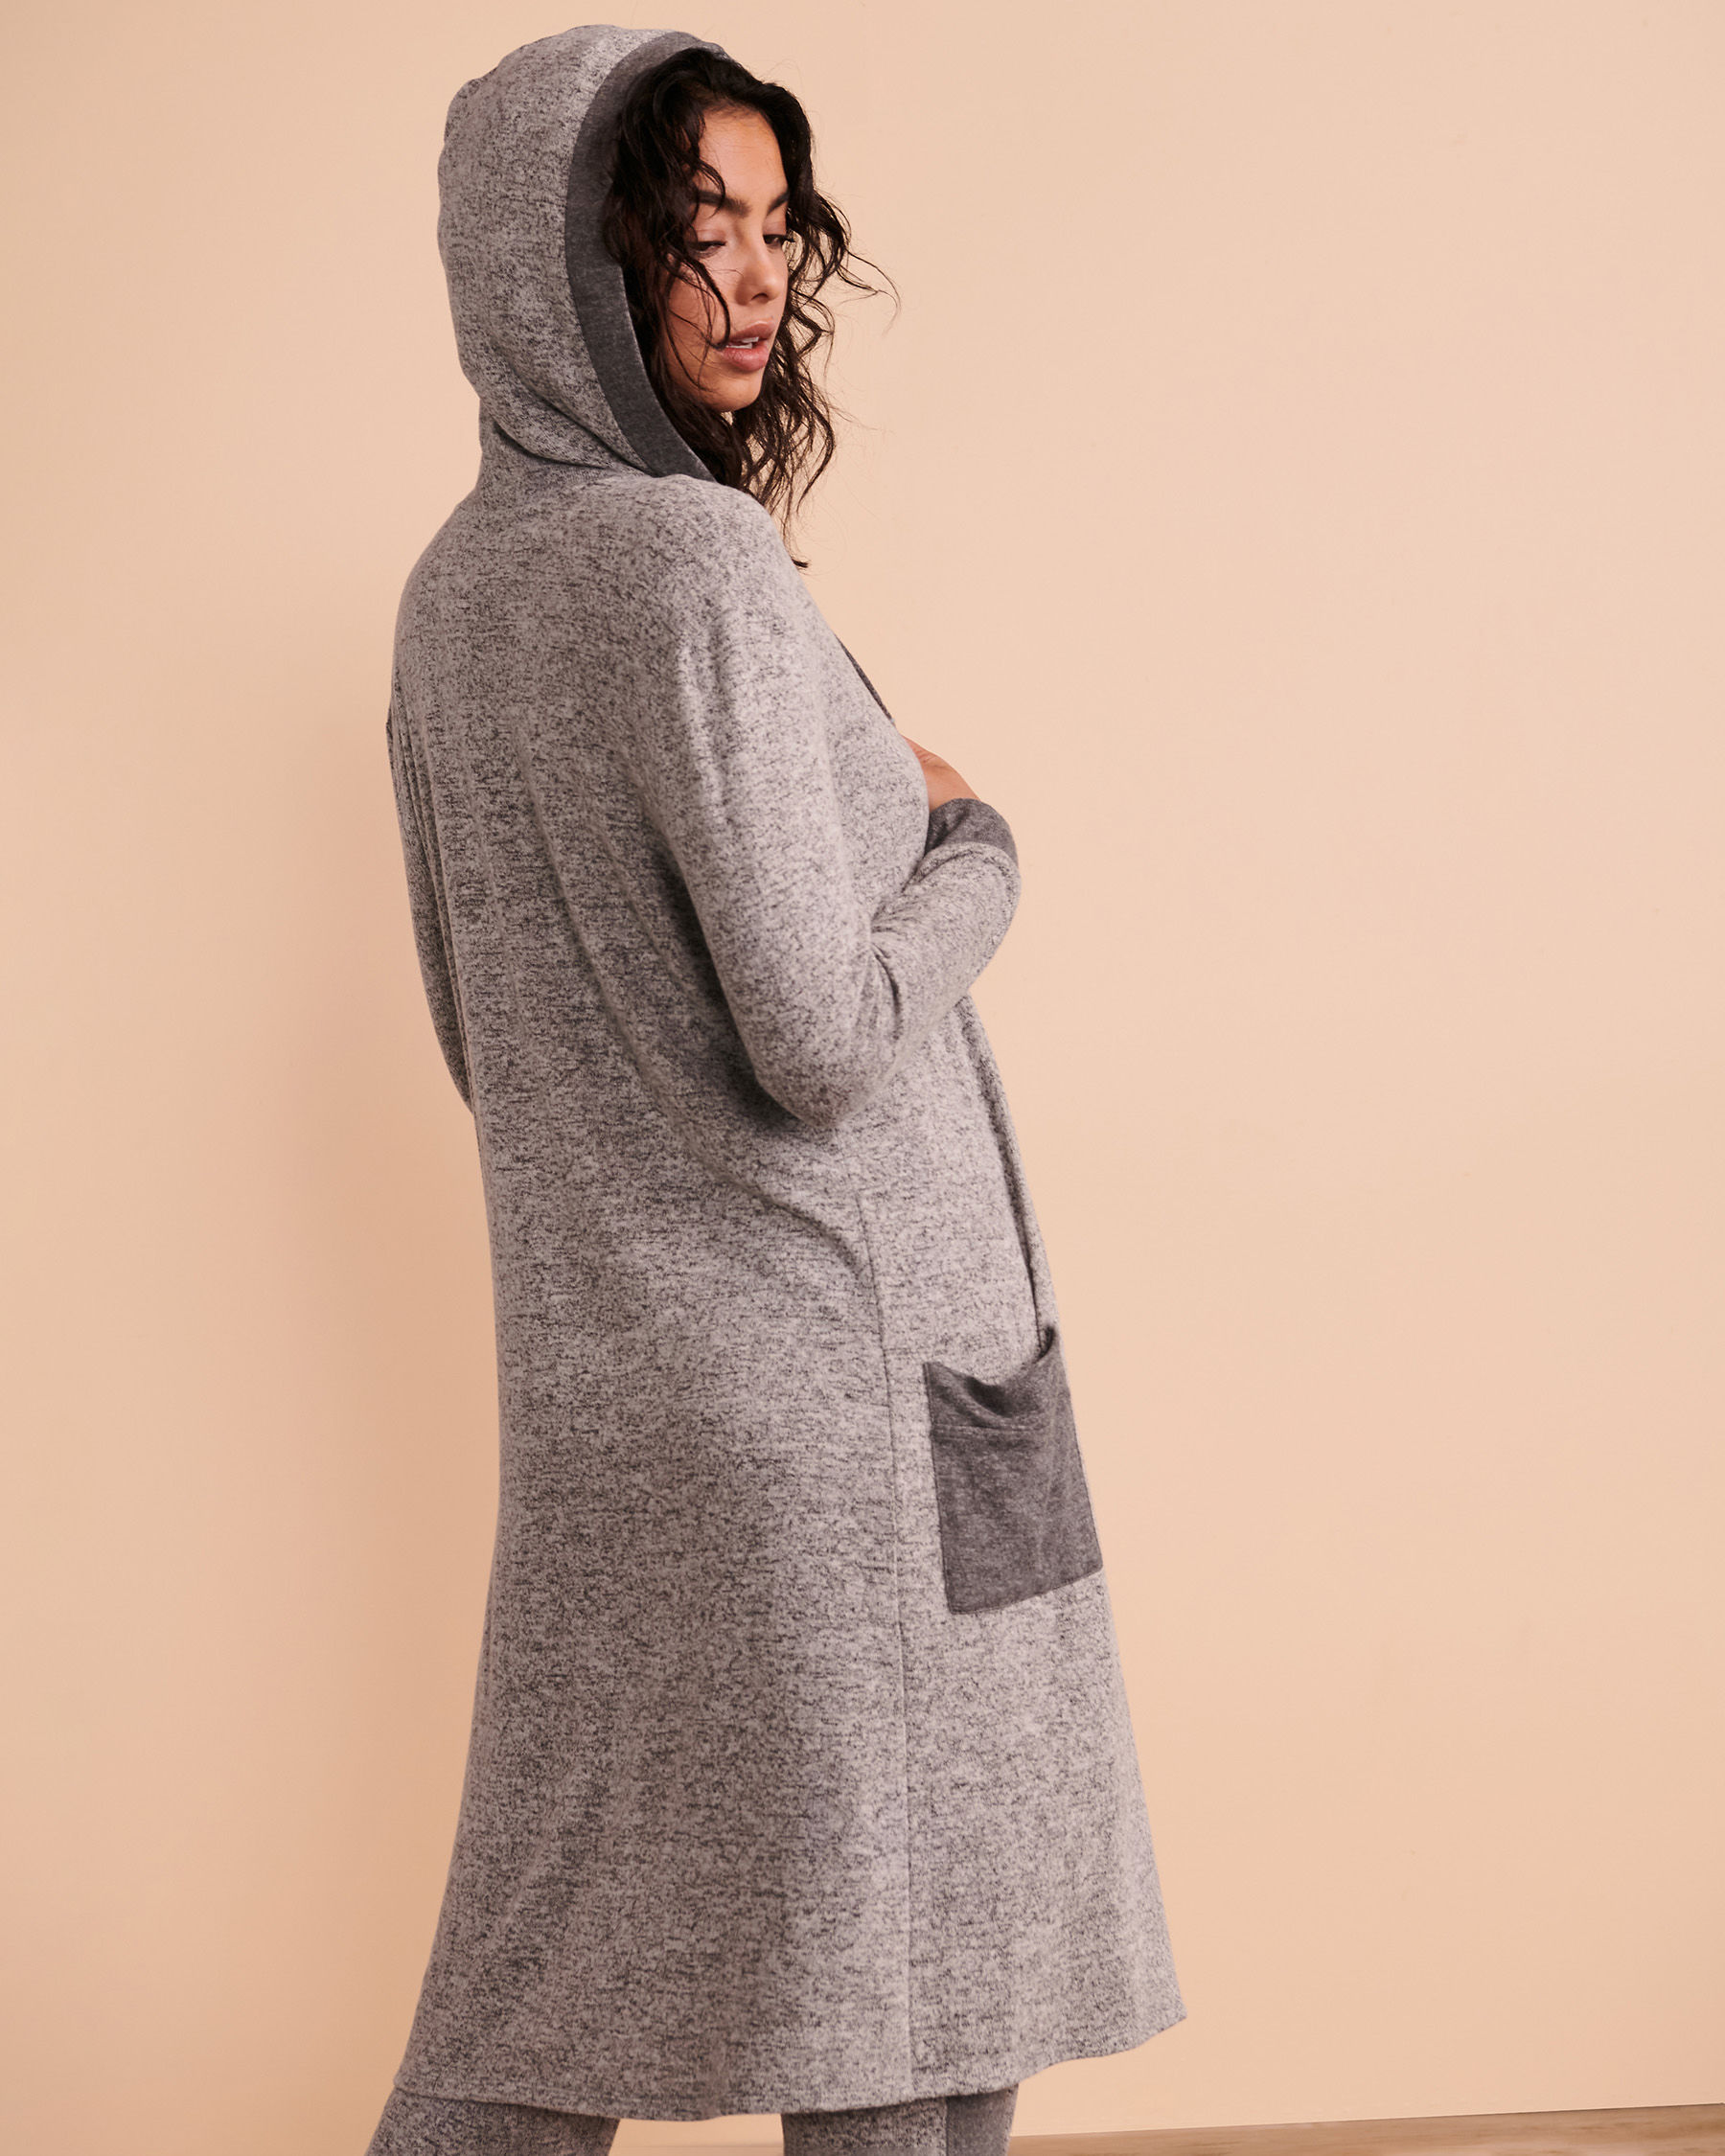 TURQUOISE COUTURE Long Sleeve Cardigan Soft grey 02400004 - View5